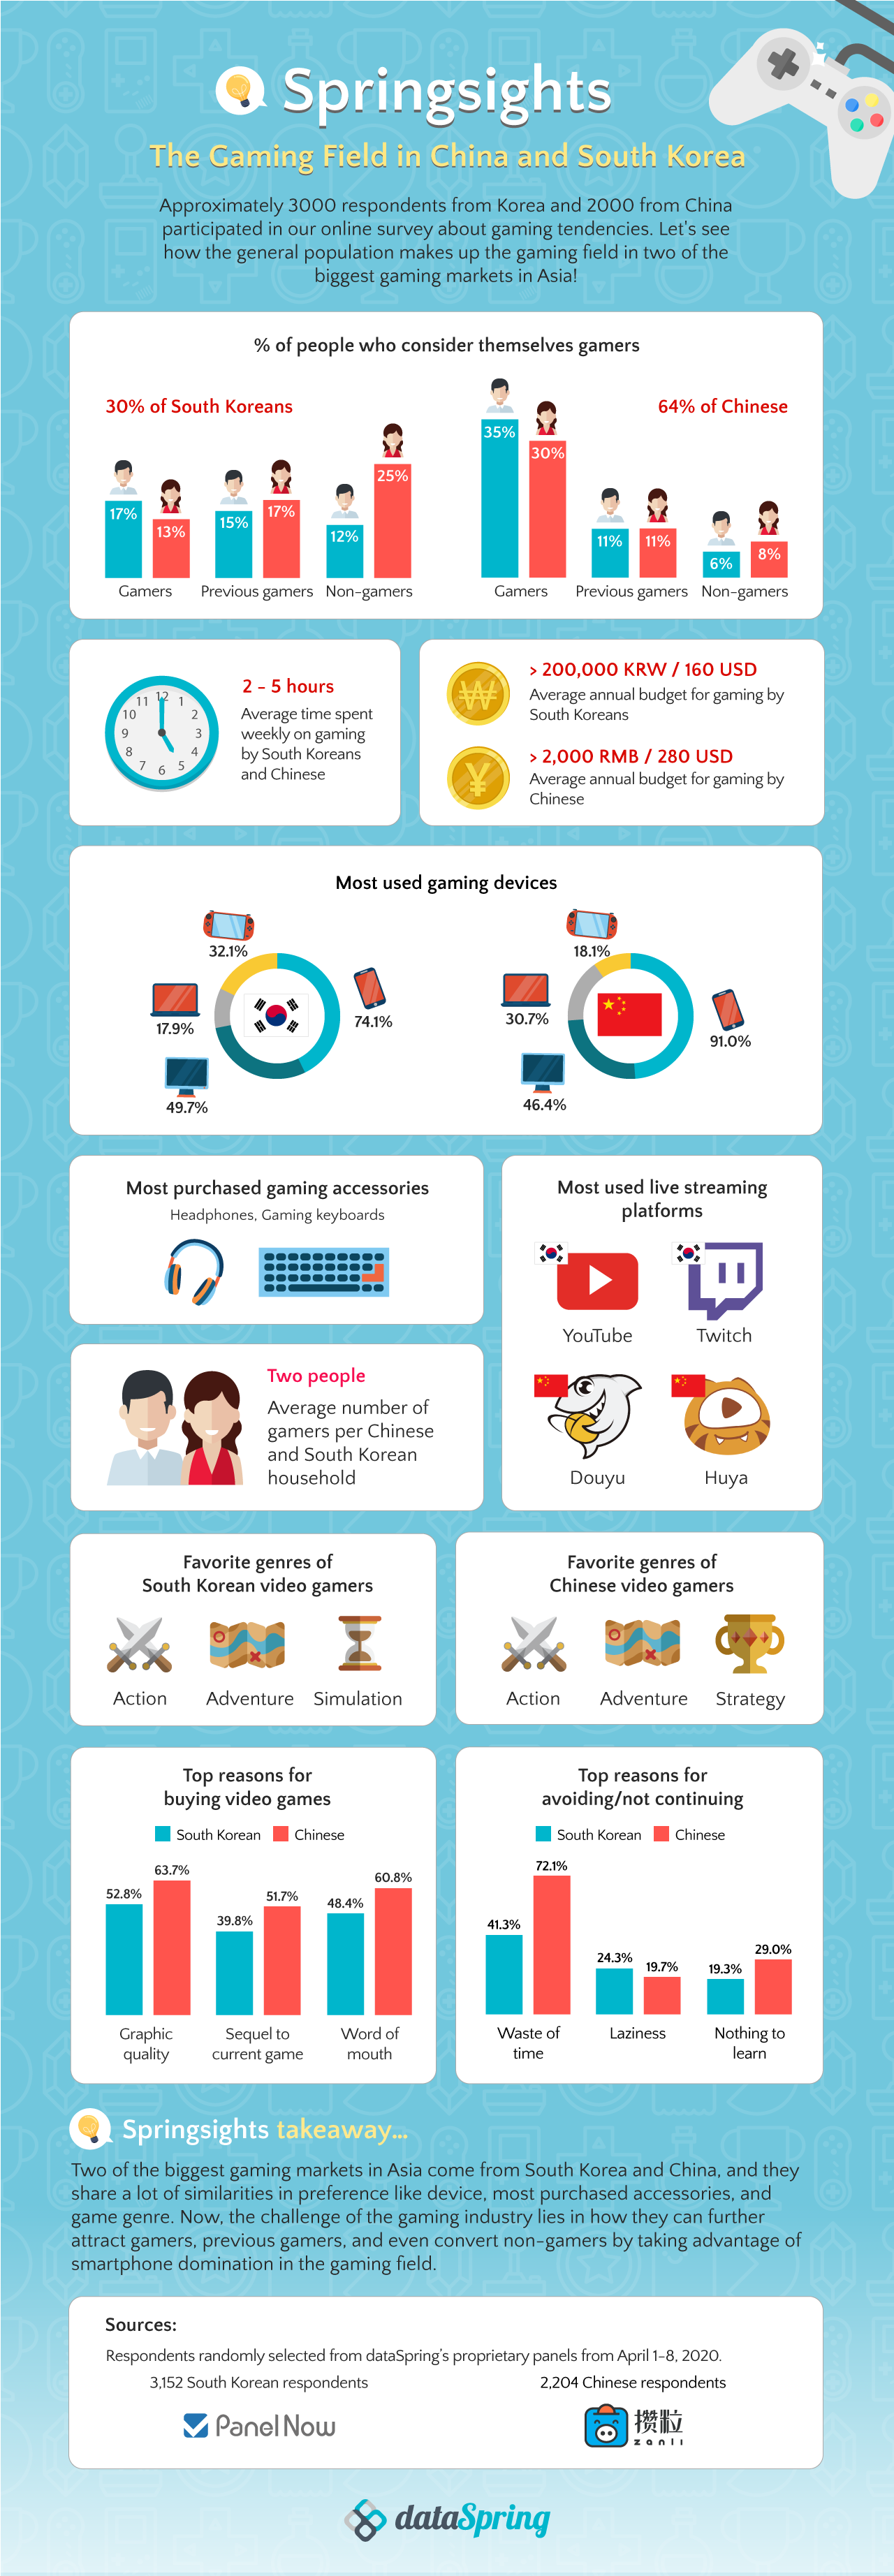 Springsights: The Gaming Field in China and South Korea